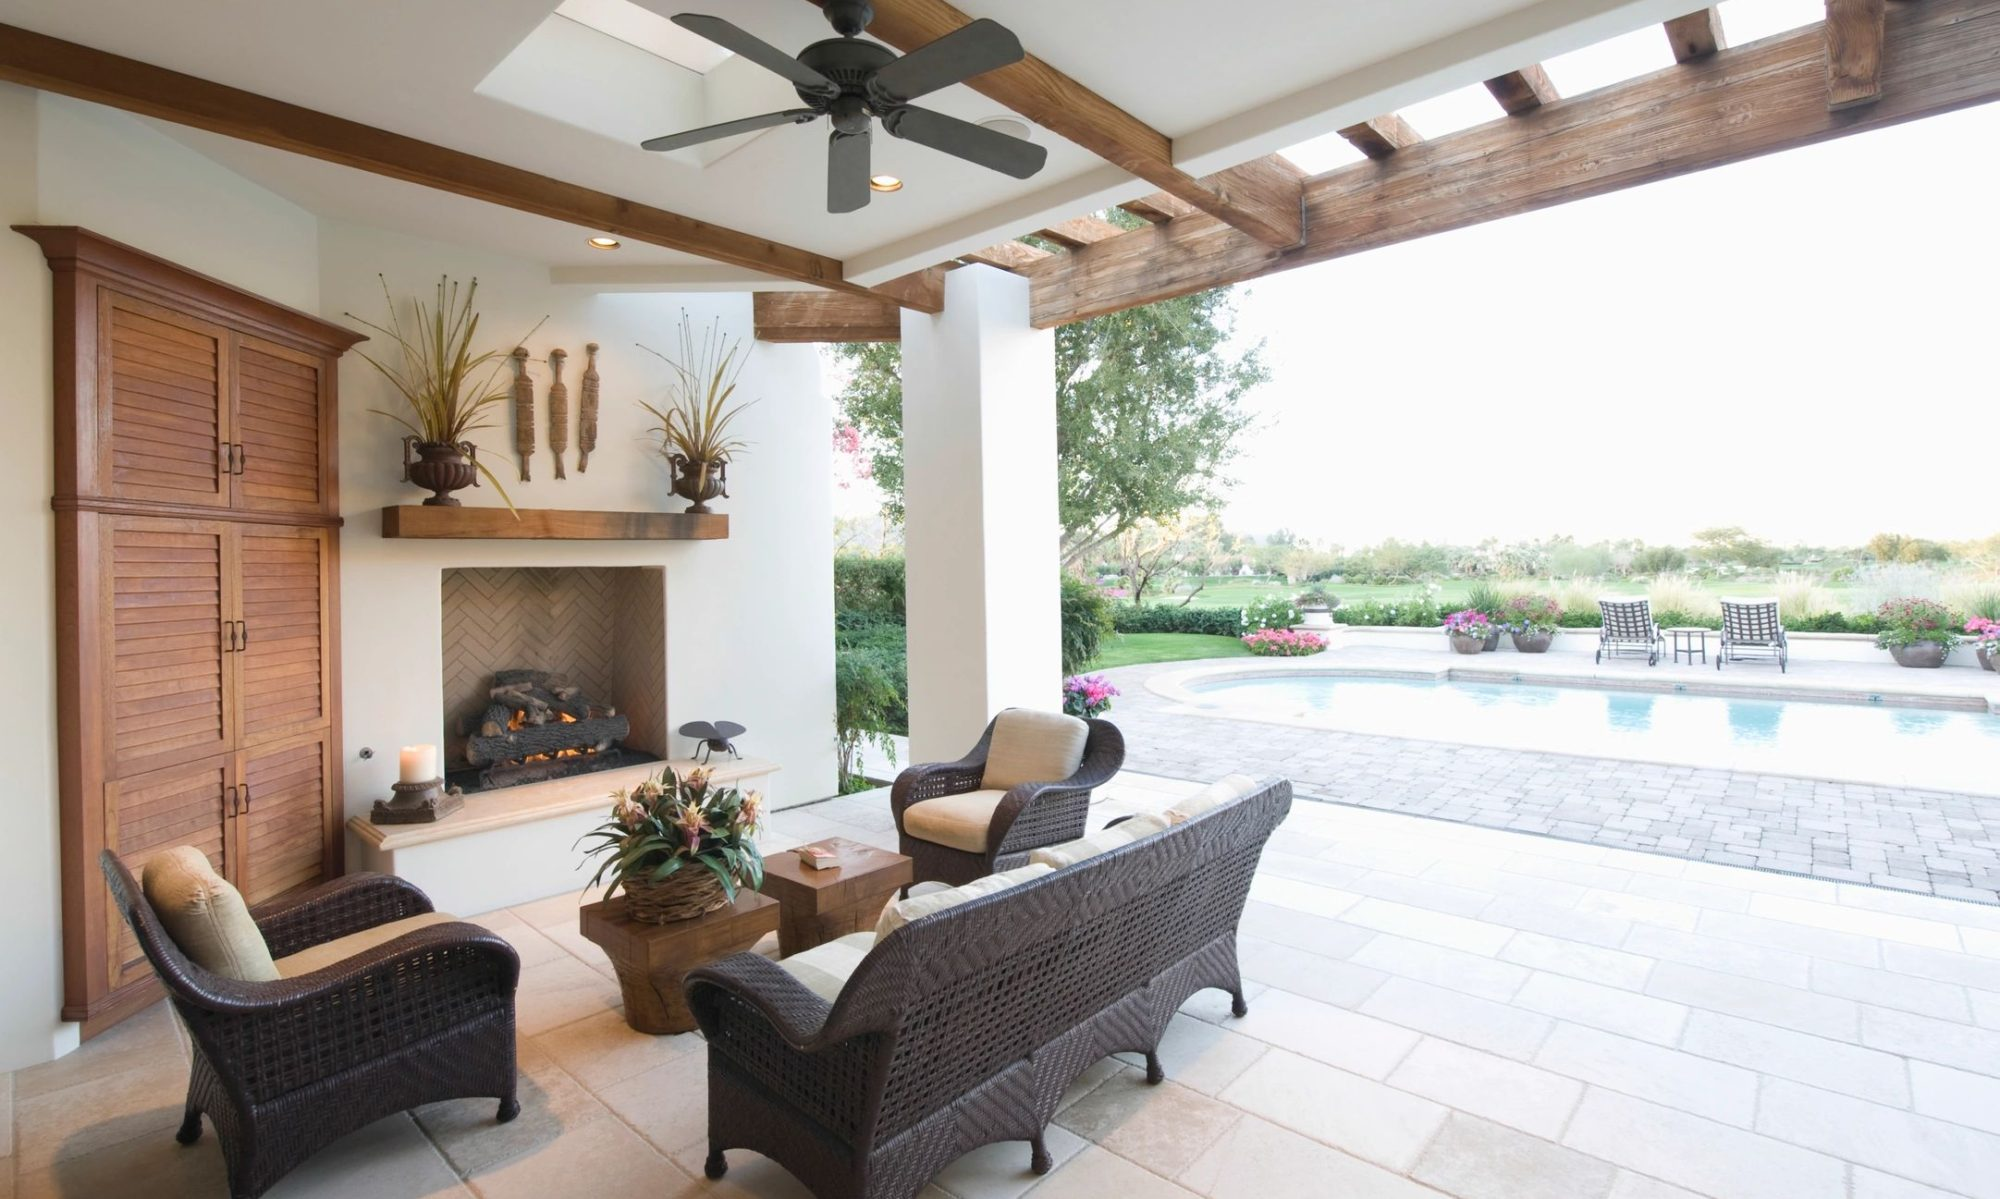 Homes By ALG U2013 Premier Access To Exclusive SoCal Living